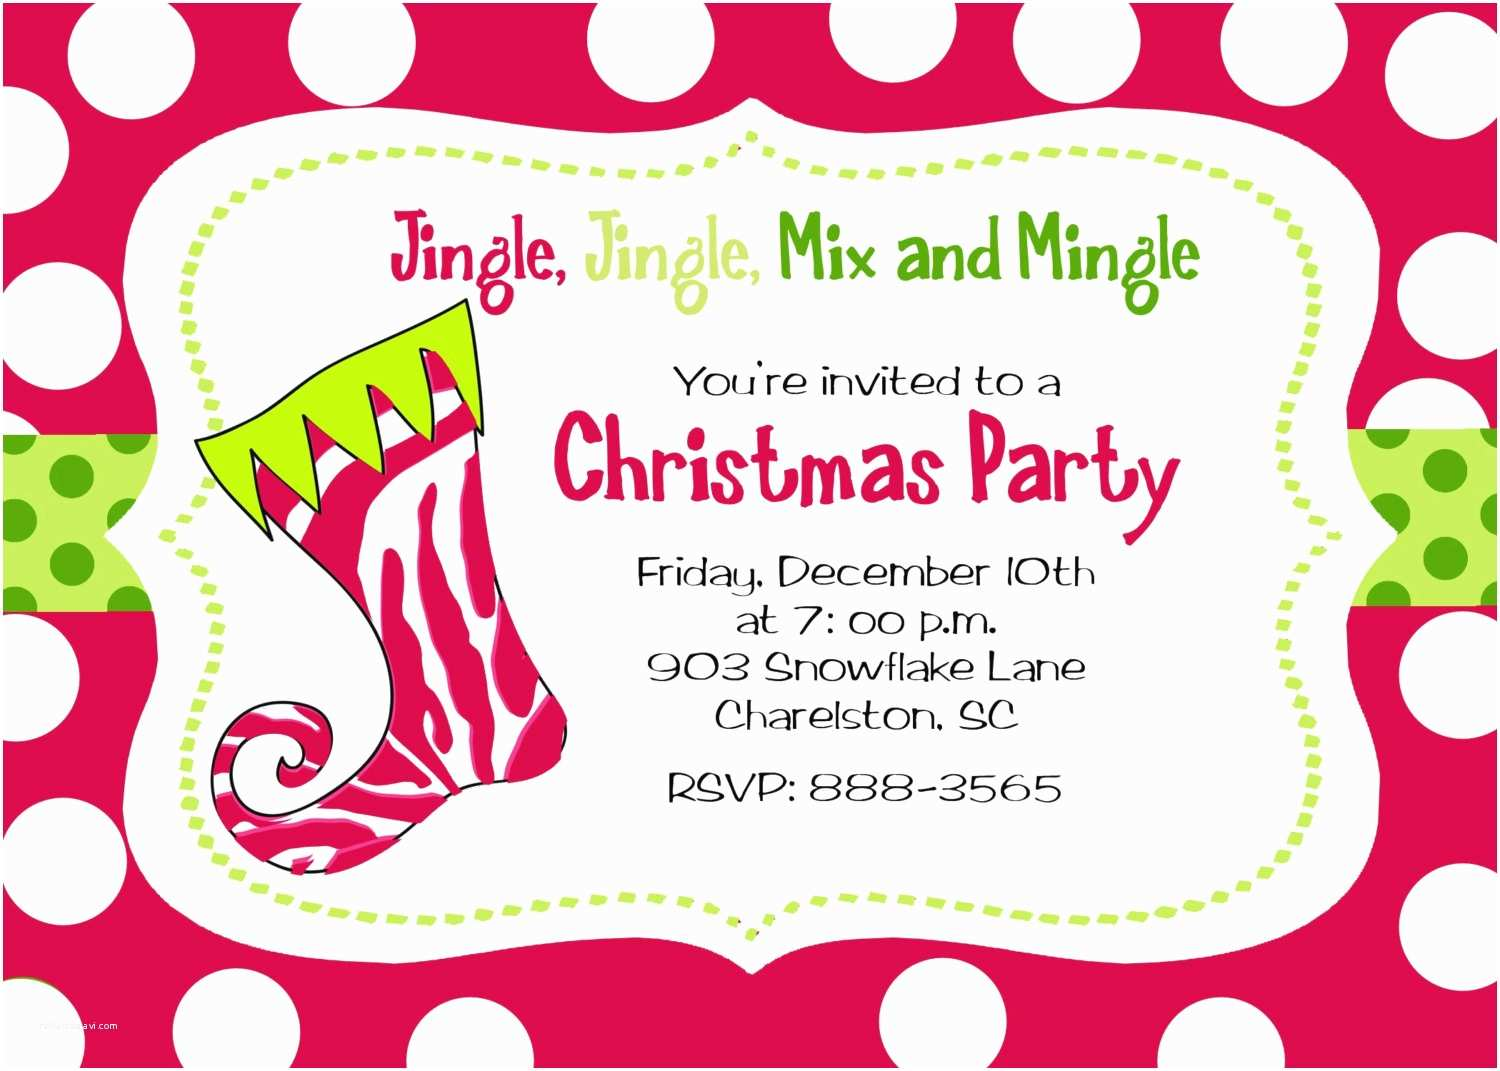 Holiday Party Invite Wording Christmas Party Invitation